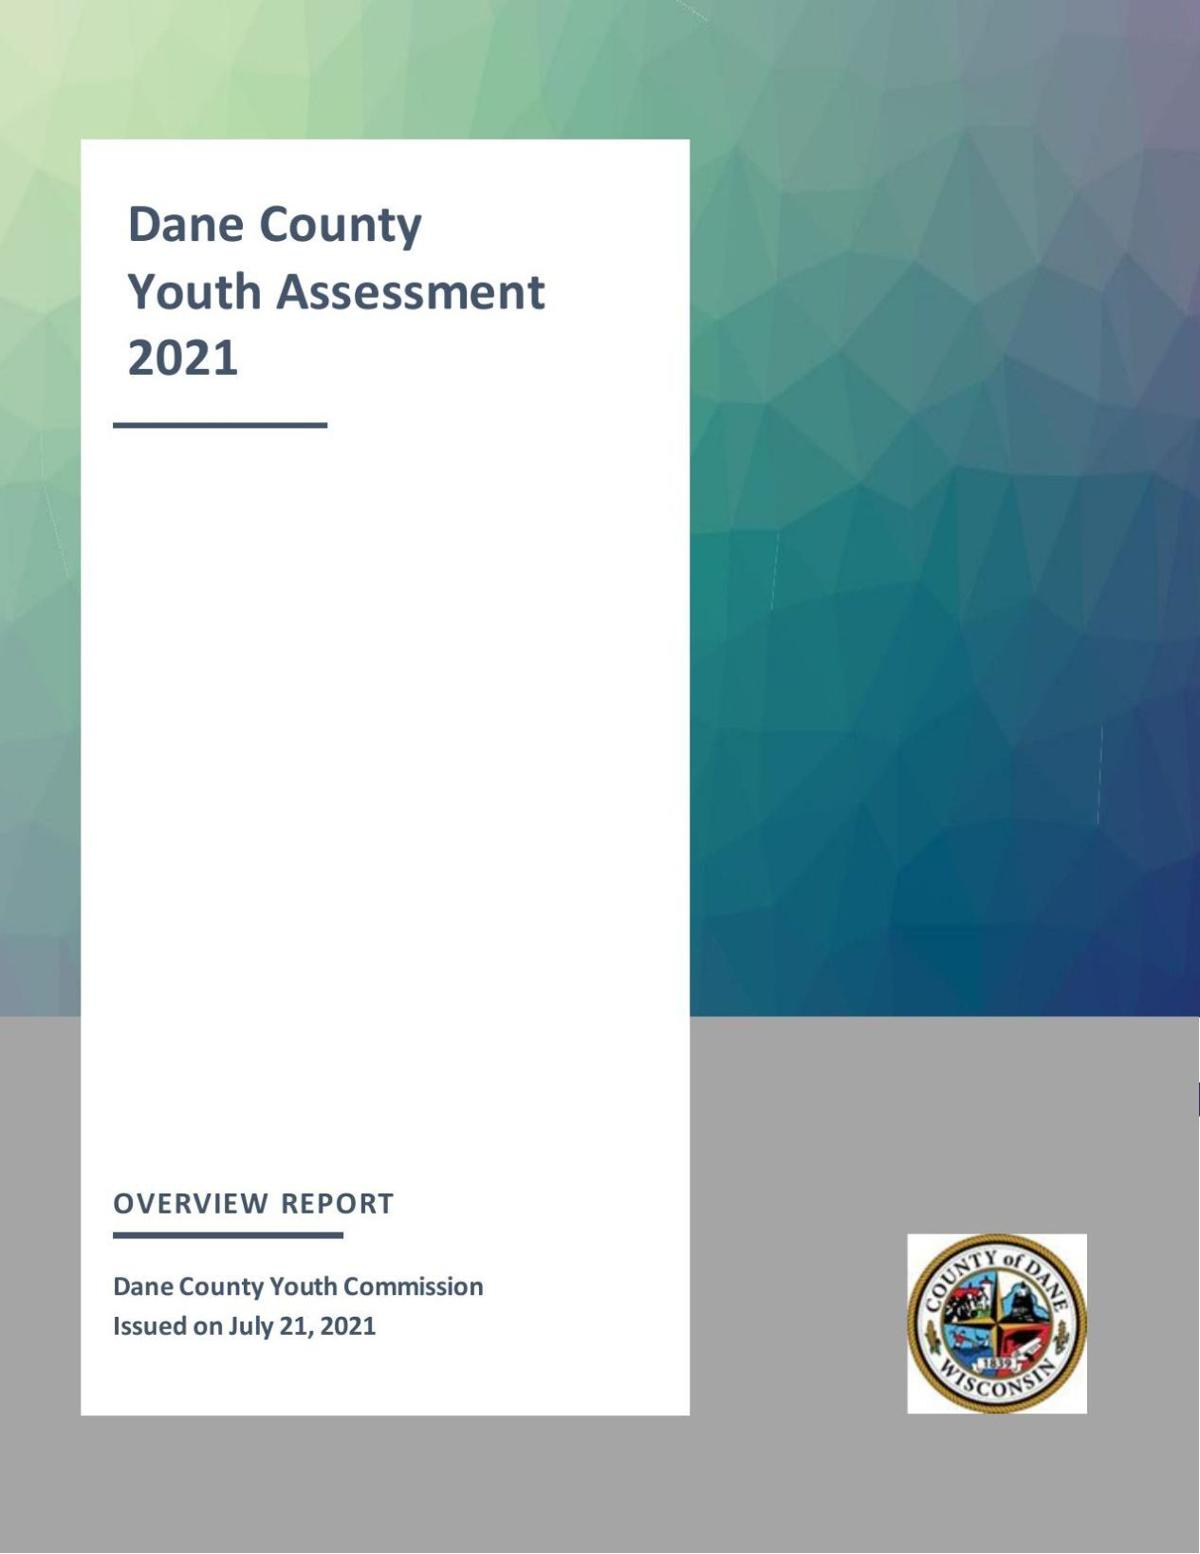 Dane County Youth Assessment 2021